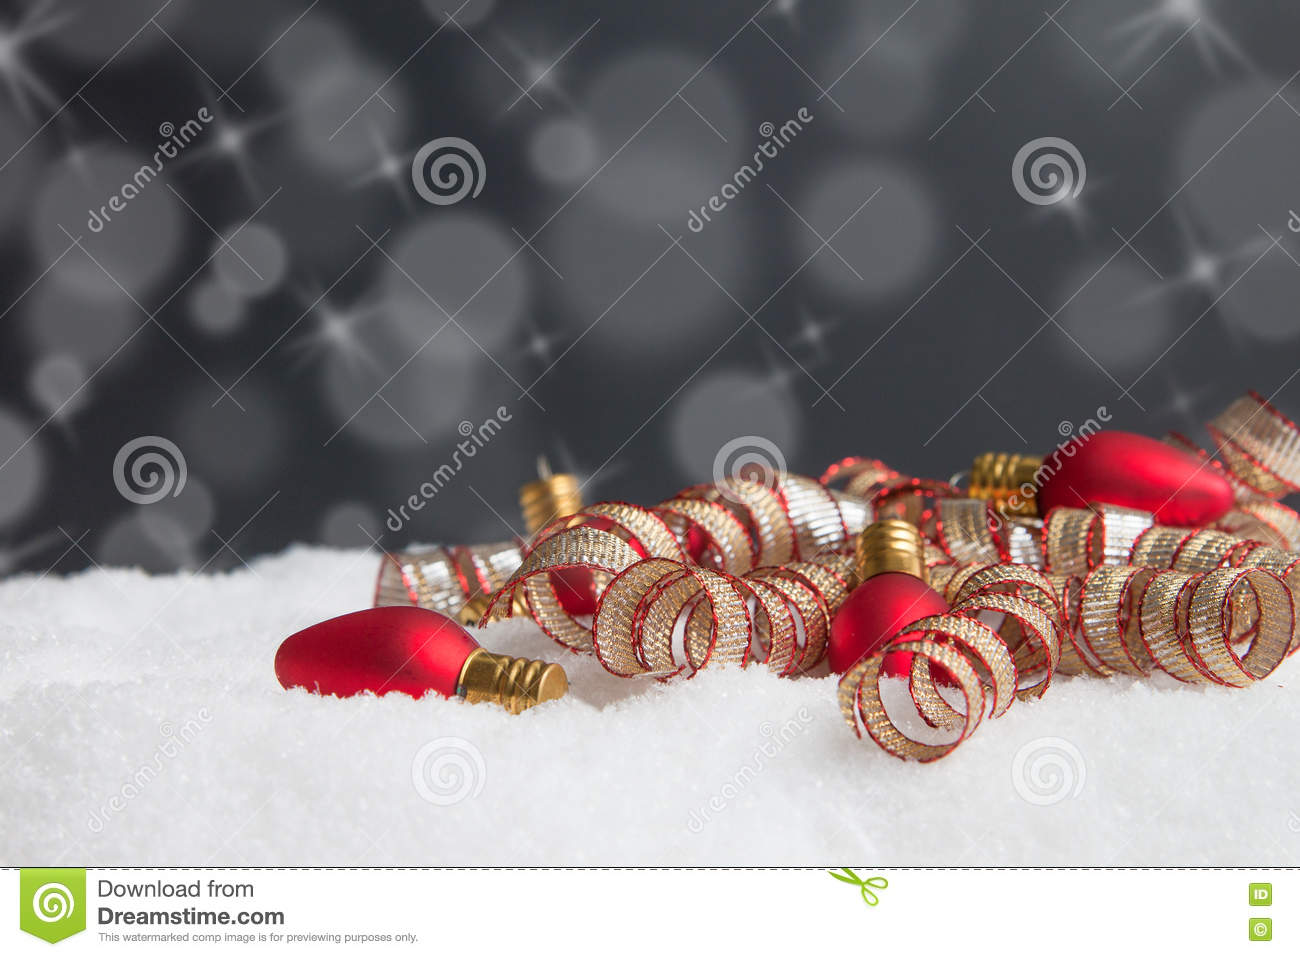 Download Ornements De Lumière De Noël Dans La Neige Avec Le Backgro Gris De Snoflake Photo stock - Image du babiole, bande: 63085686